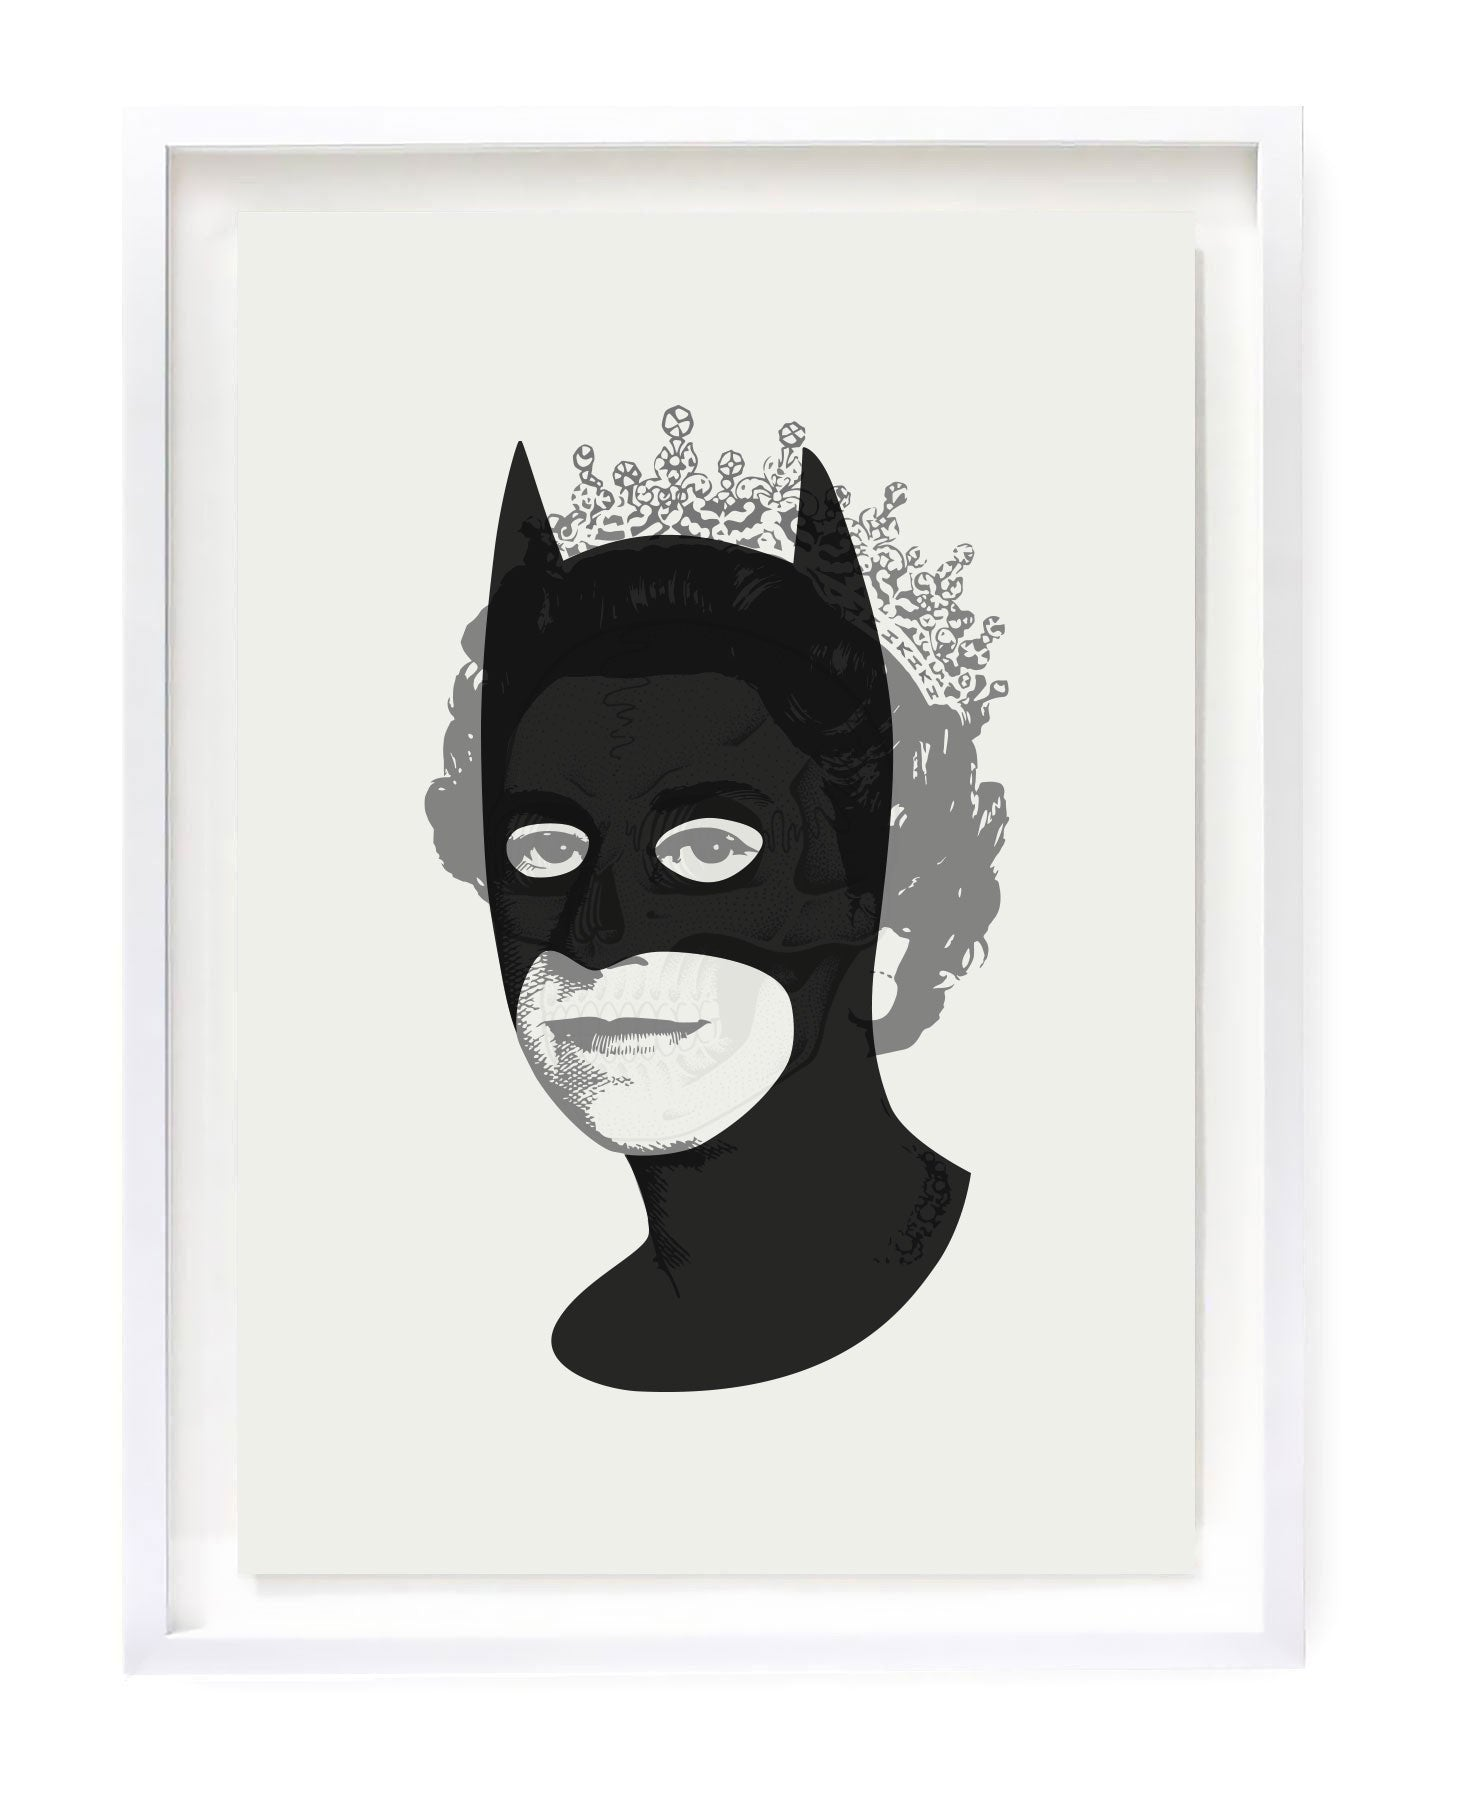 Rich Enough to be Batman - Black Skull A3 edition